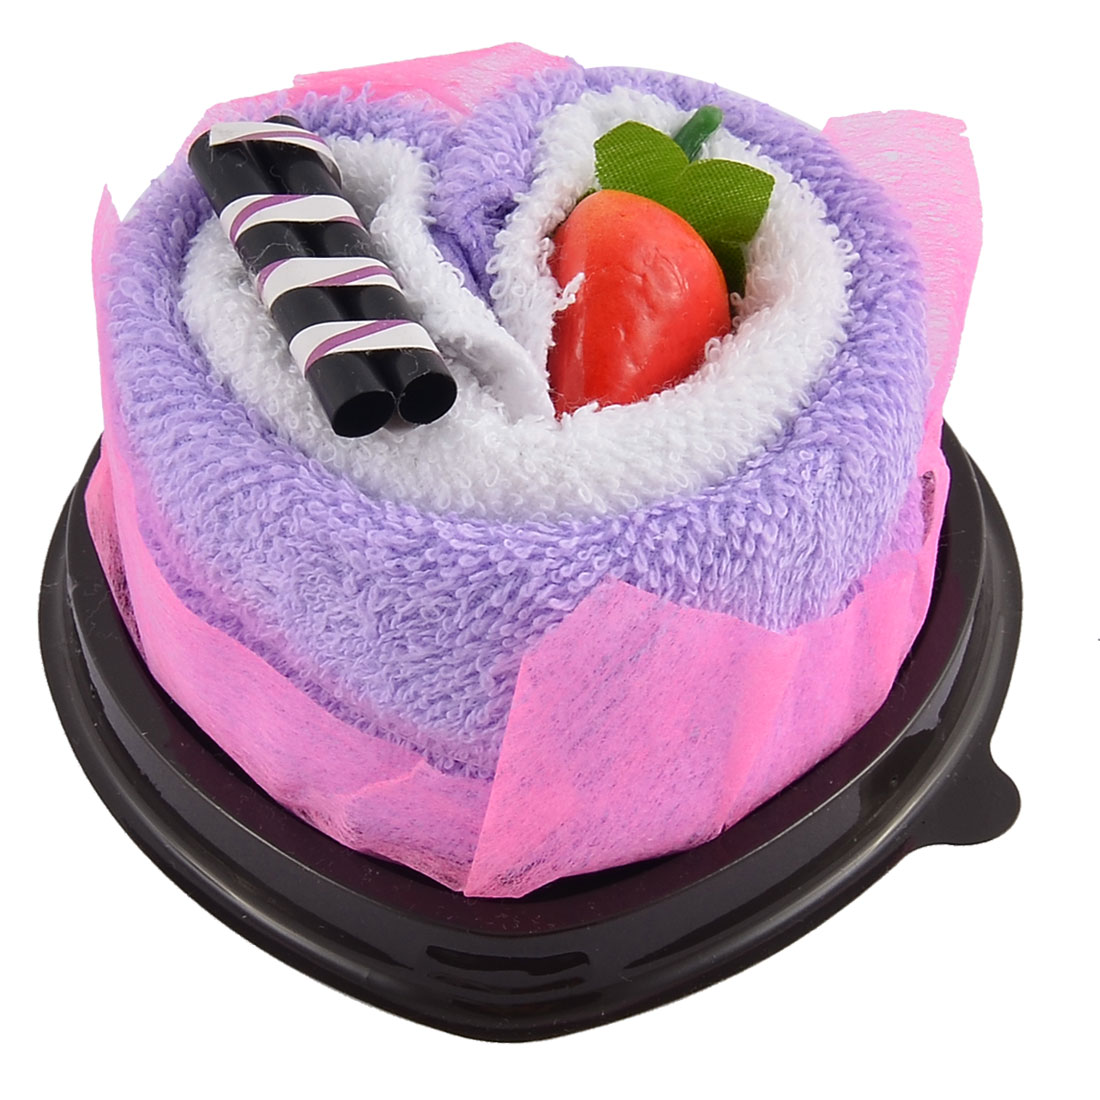 Simulated Strawberry Chocolate Bar Detail Heart Shape Cupcake Towel Washcloth Decor Gift Purple